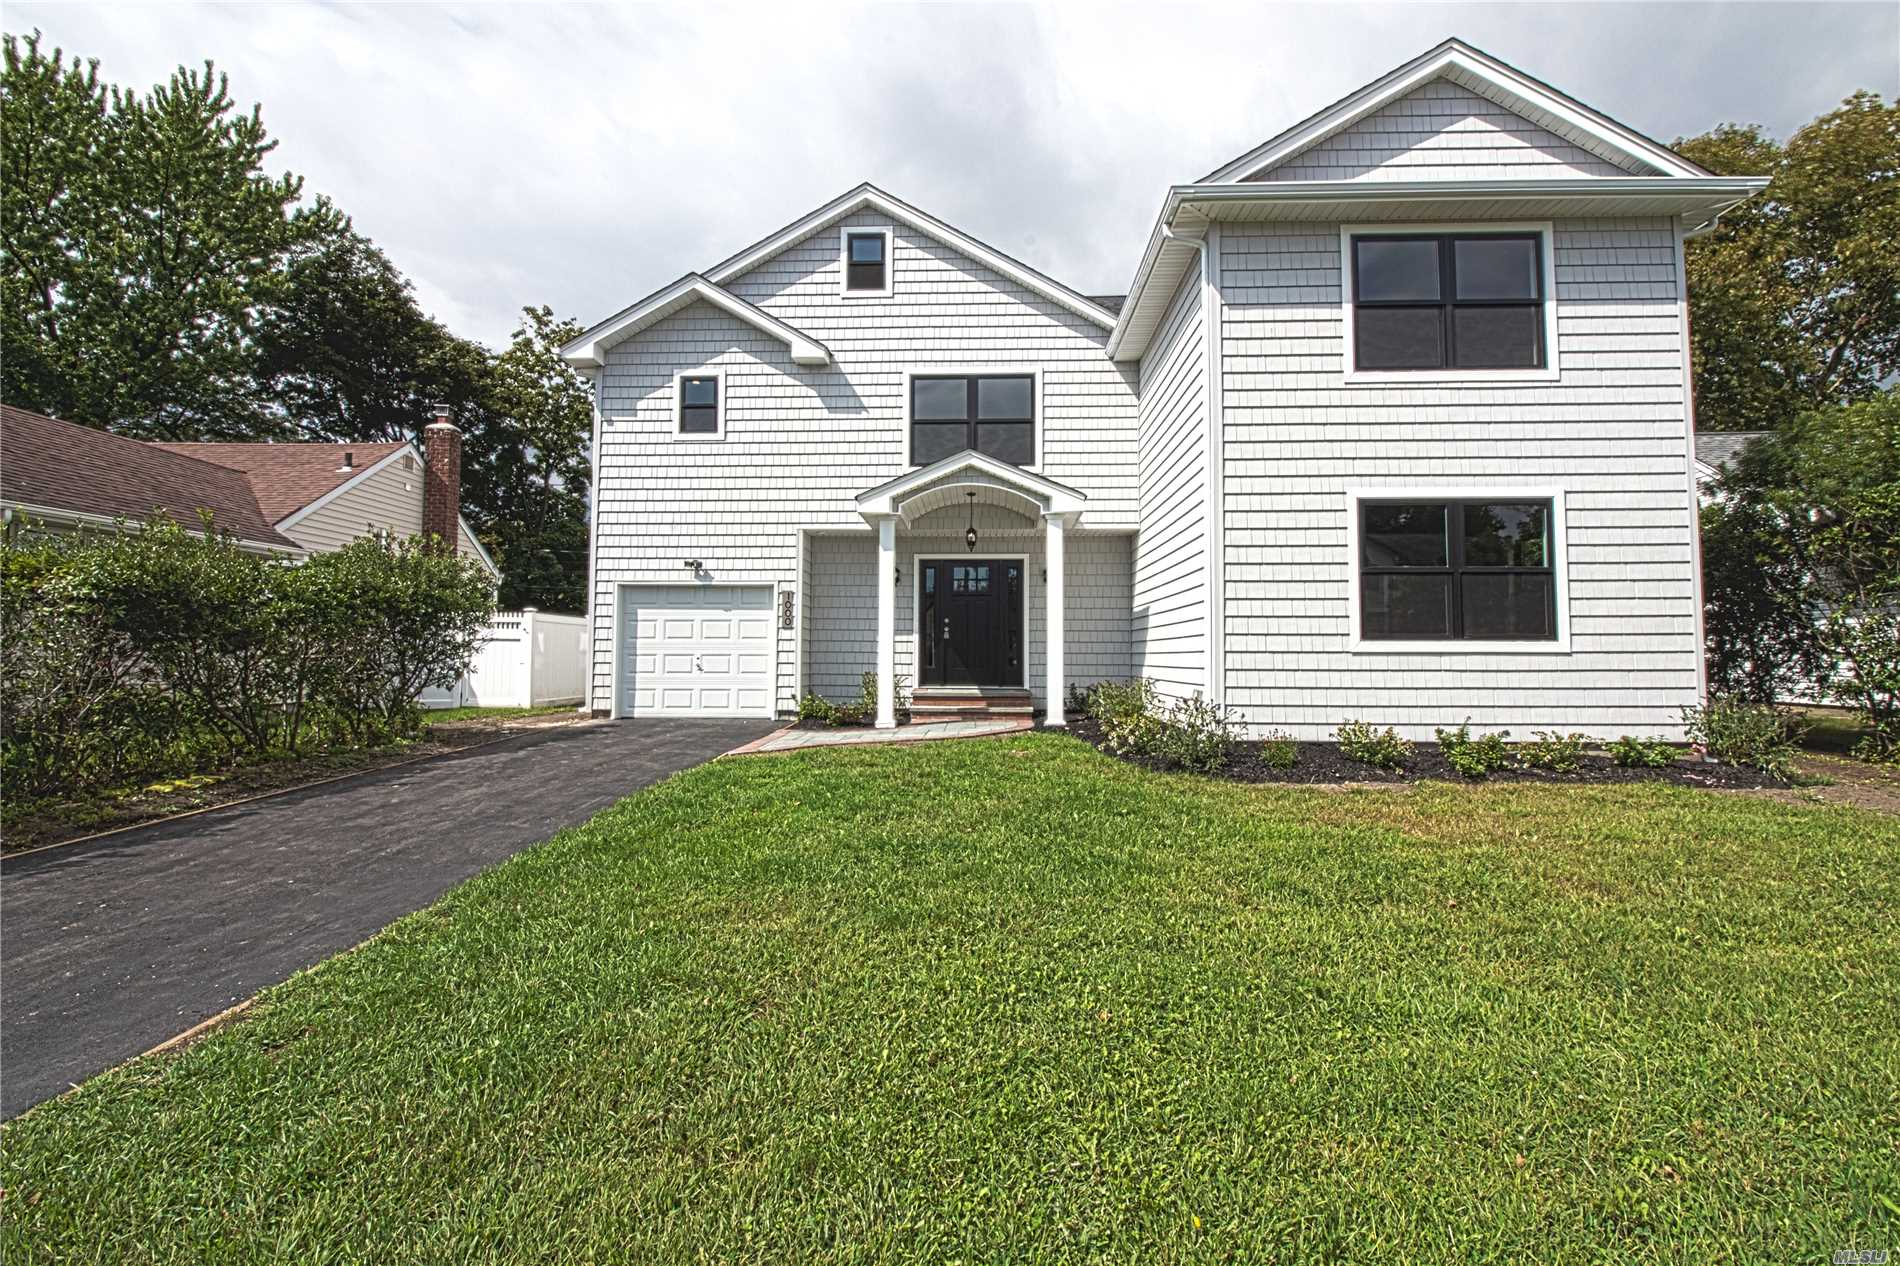 Amazing 4 Bedroom, 3 Bathroom Custom Colonial With Open Floor Plan, Hardwood Floors, Black Windows, Huge White Kitchen, Finished Basement And Much More.